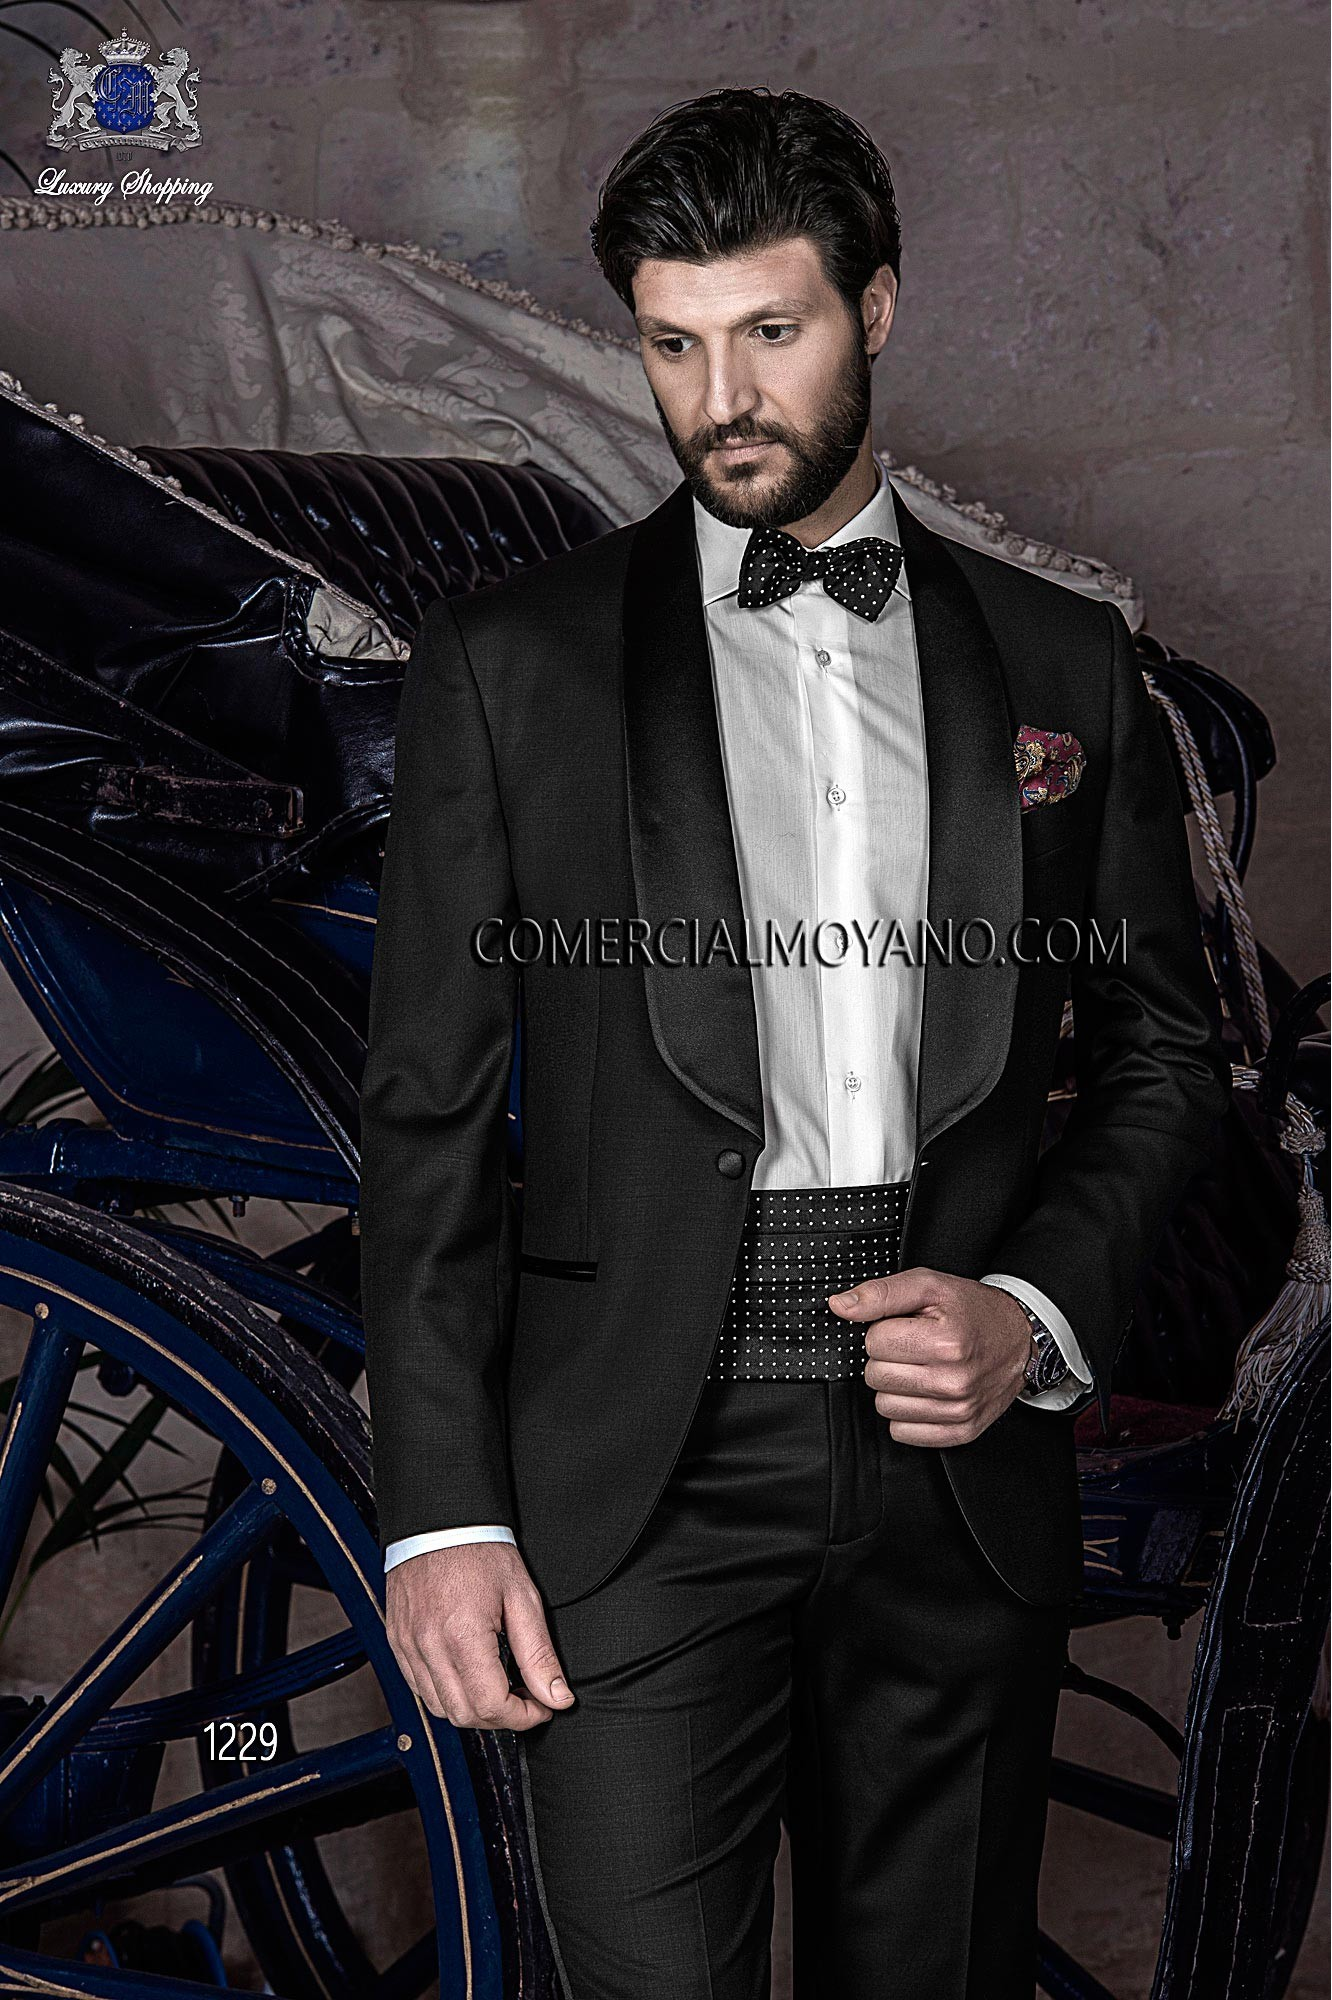 Black Tie Black men wedding suit model 1229 Ottavio Nuccio Gala